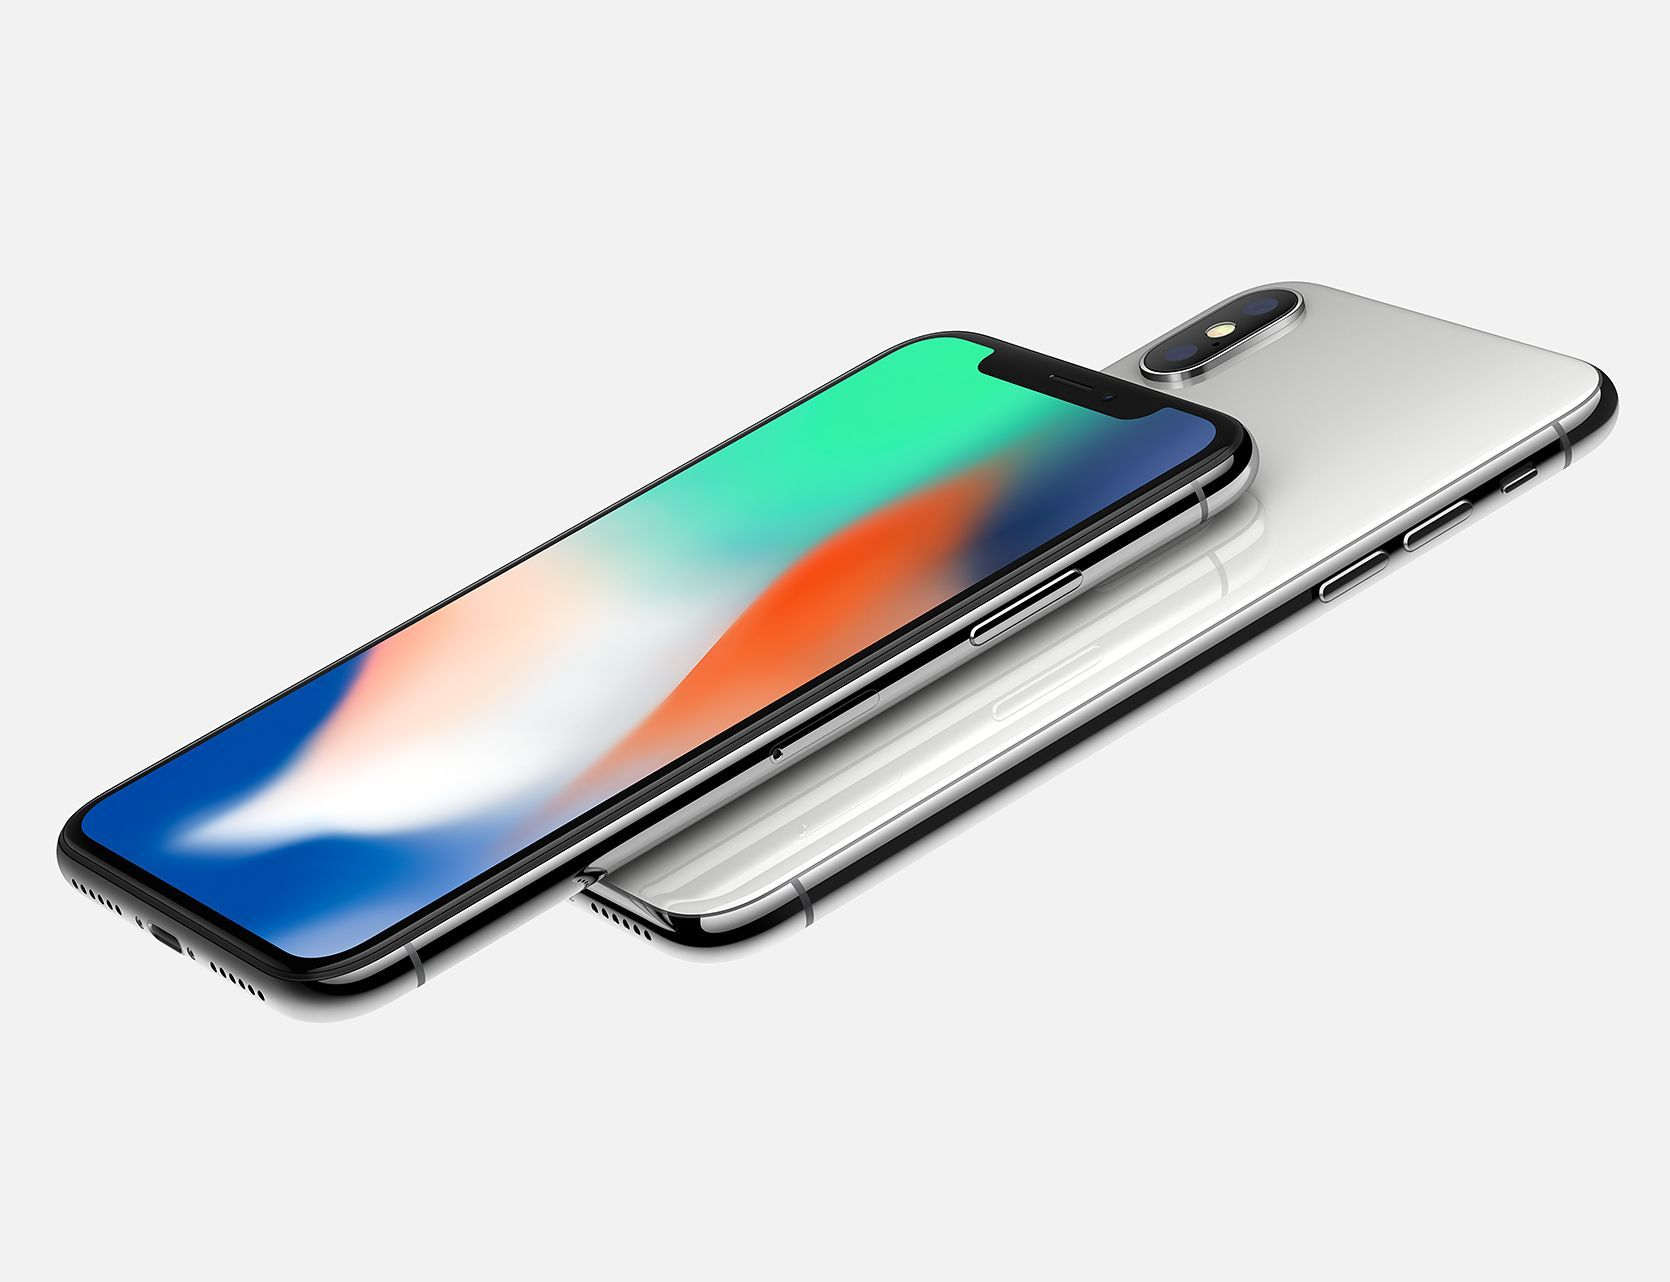 42b233ad15f210b659842fb5de9c95de - How To Get Iphone X For Free In India